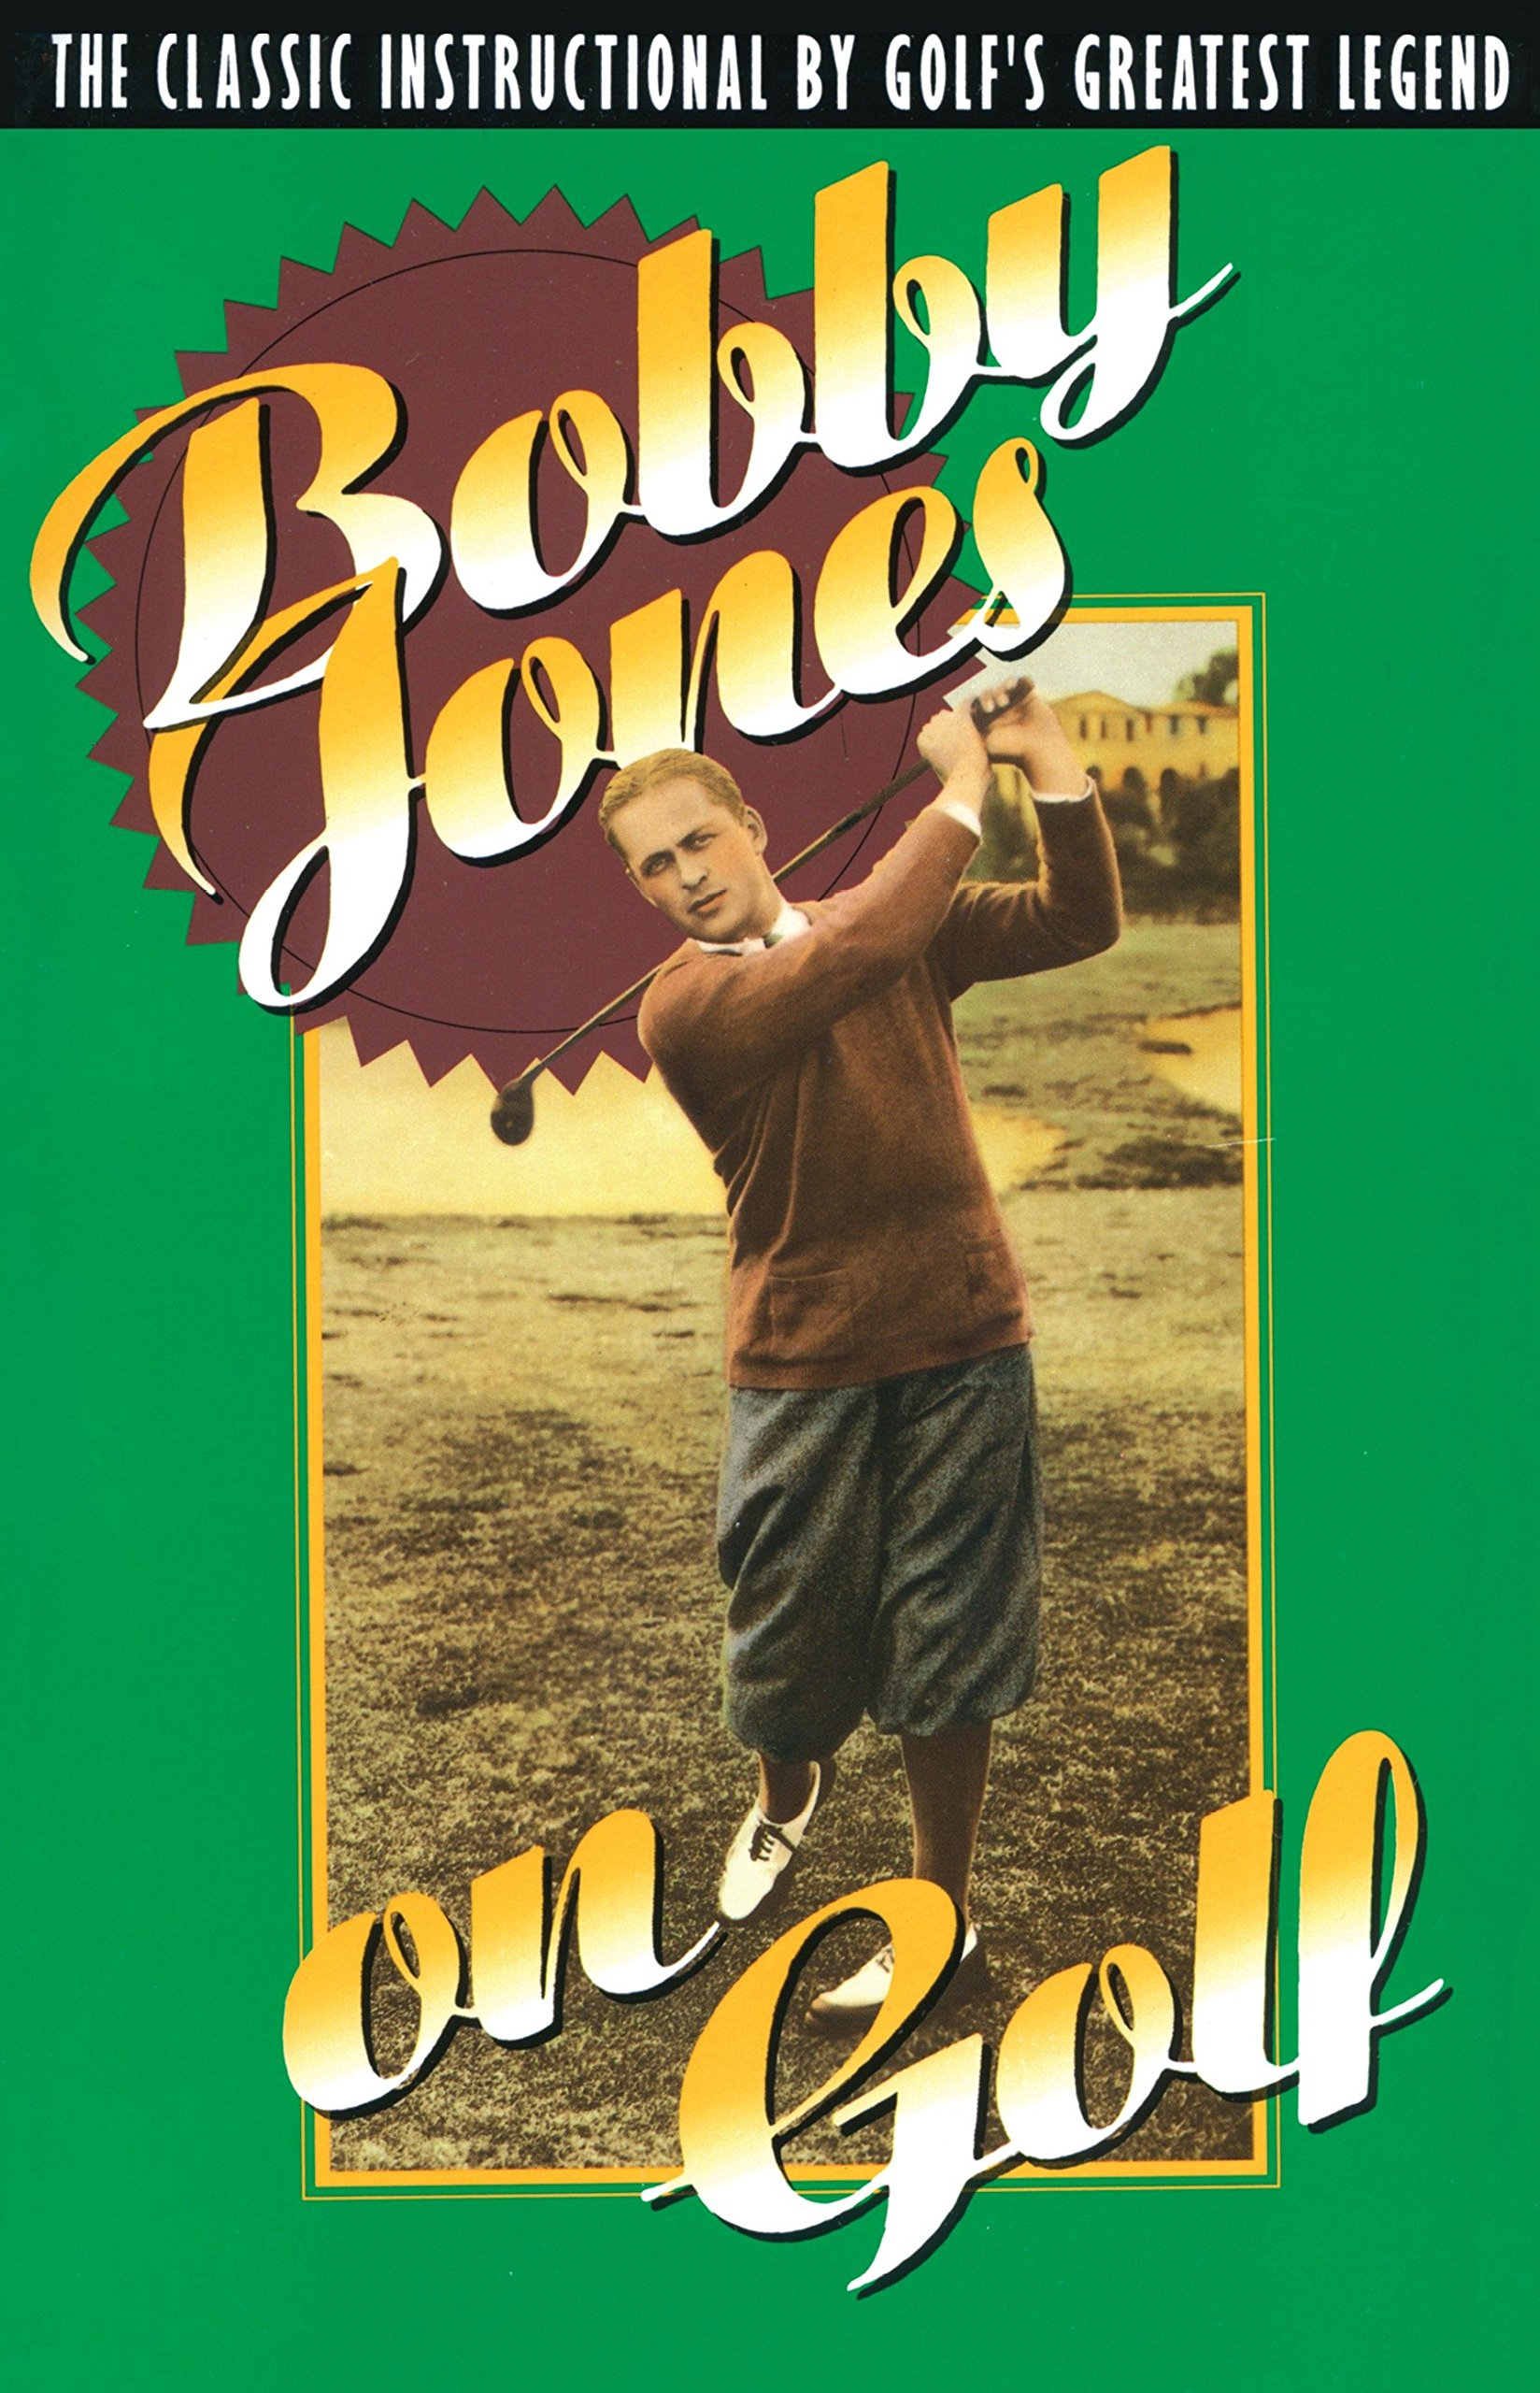 Bobby Jones on Golf: The Classic Instructional by Golf's Greatest Legend  Paperback – May 1, 1992